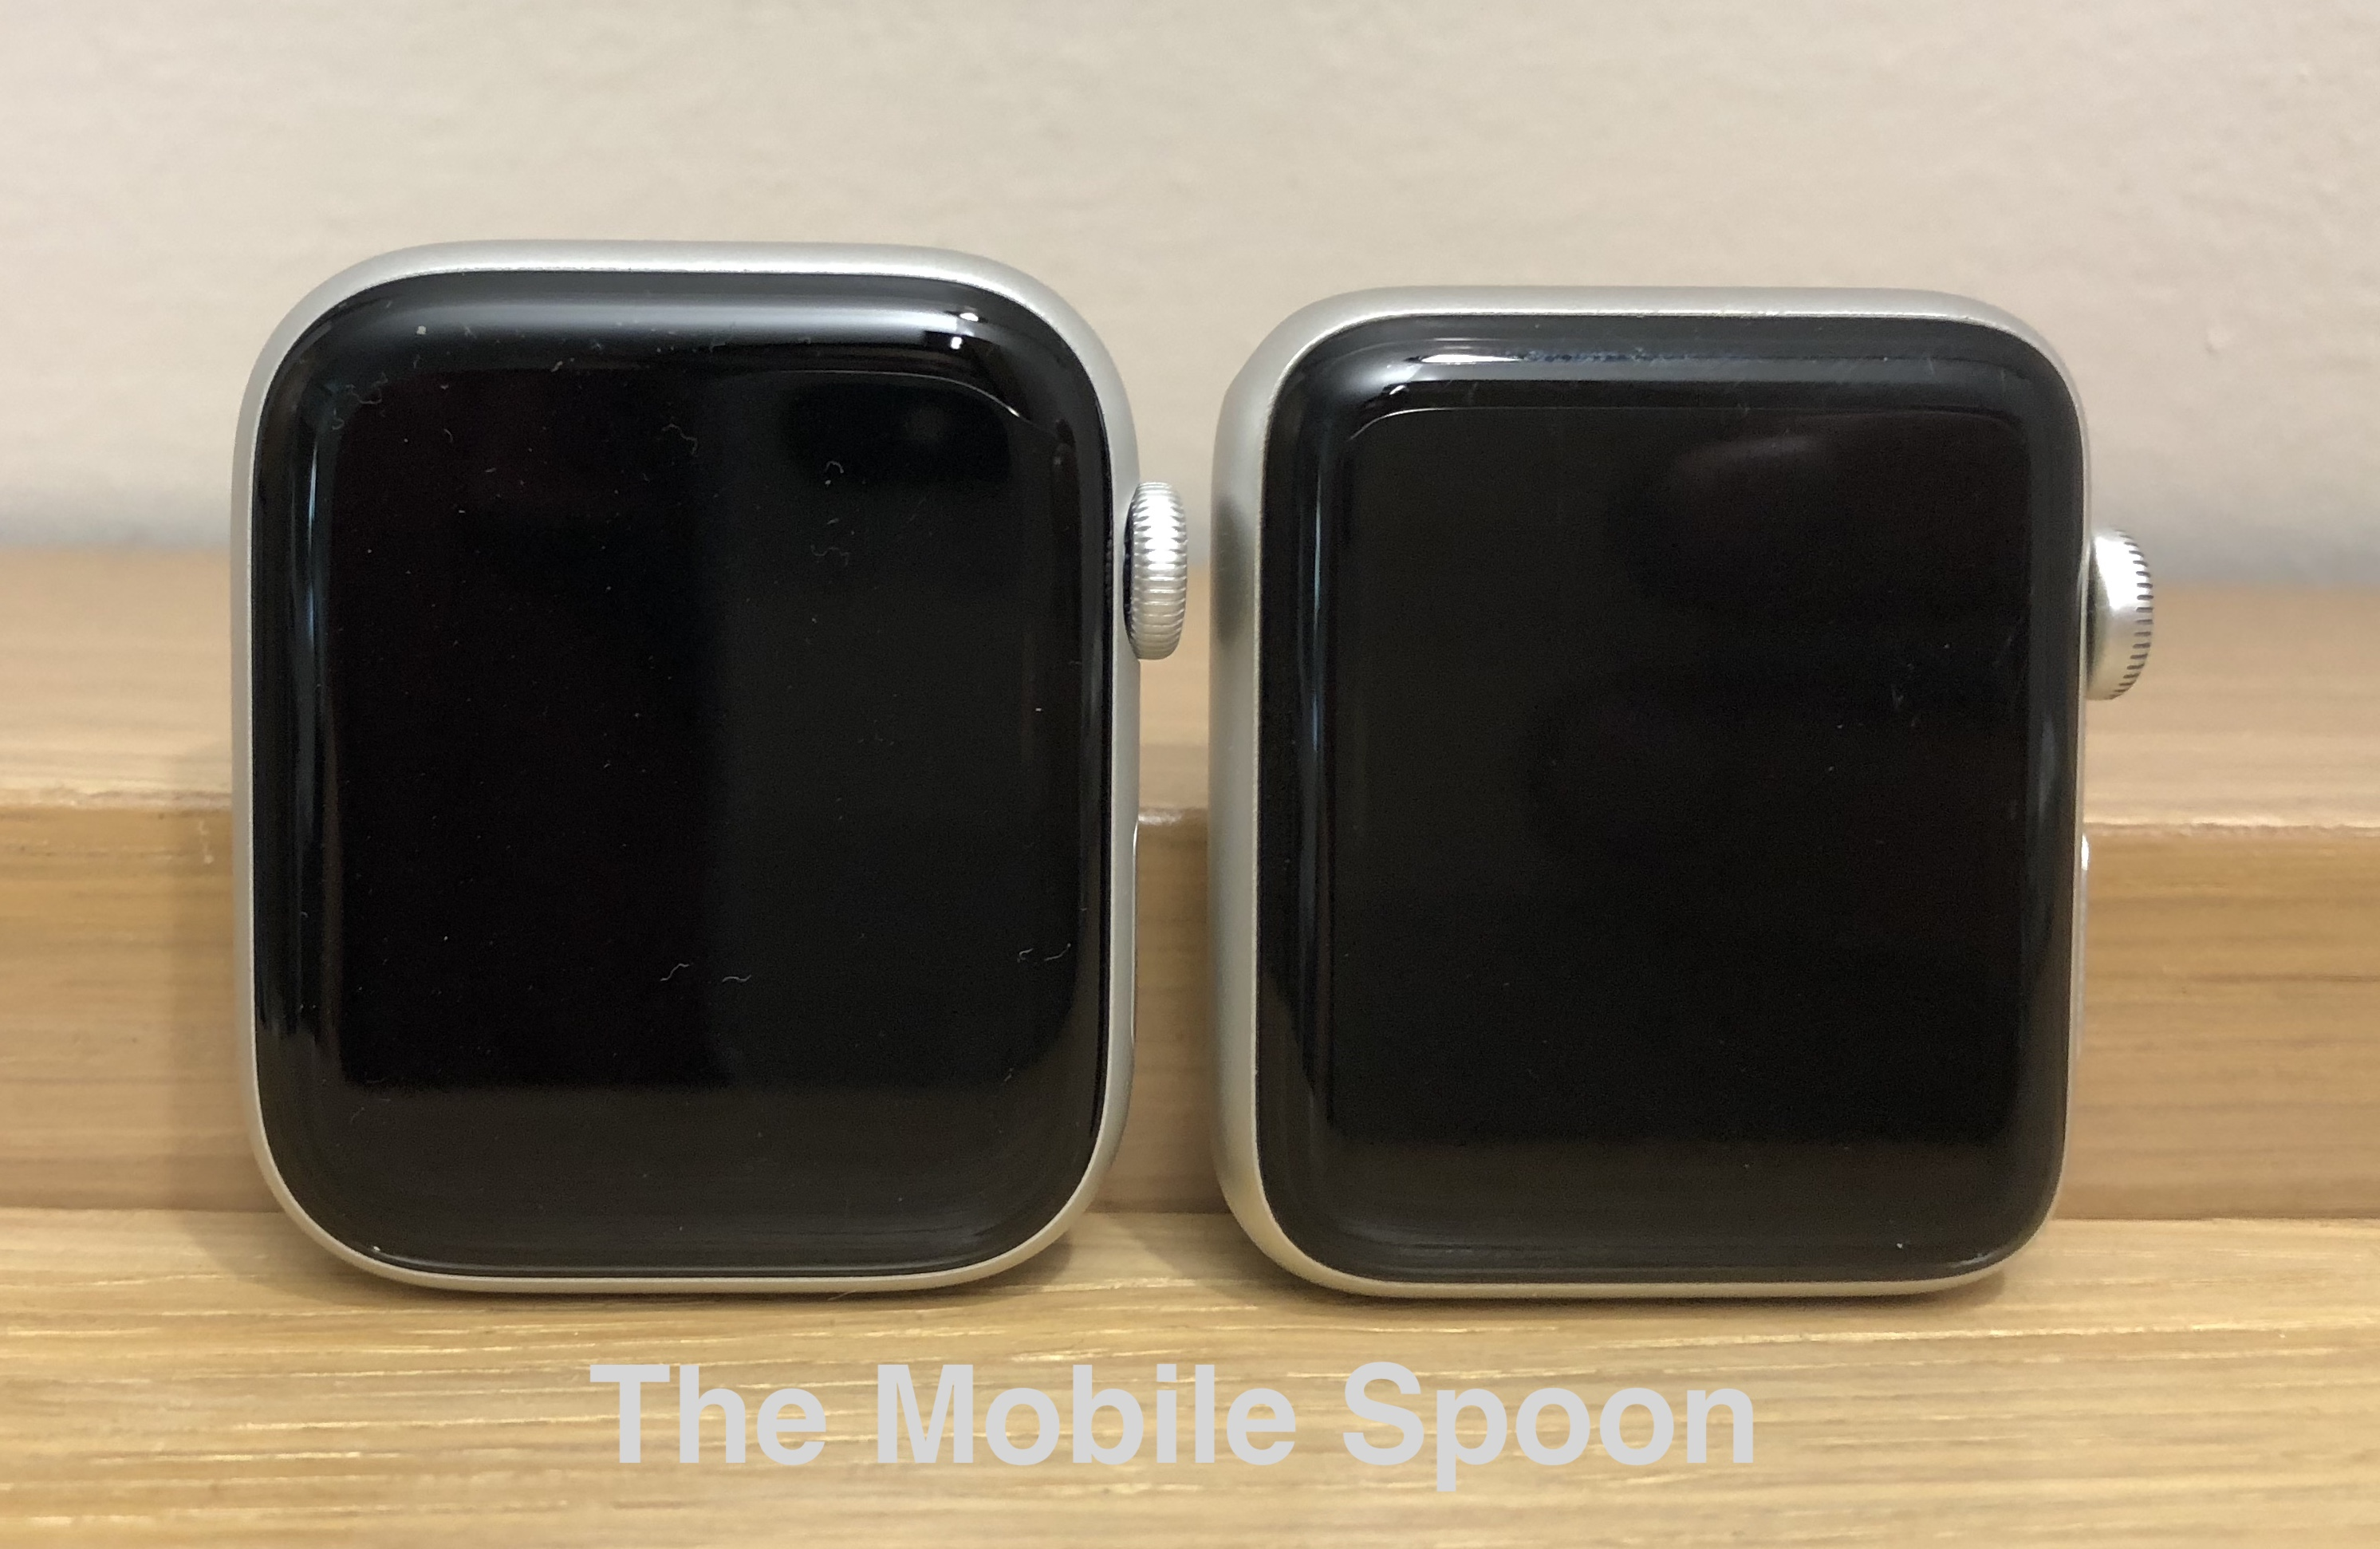 Apple Watch 44mm vs. Apple Watch 42mm - Comparison